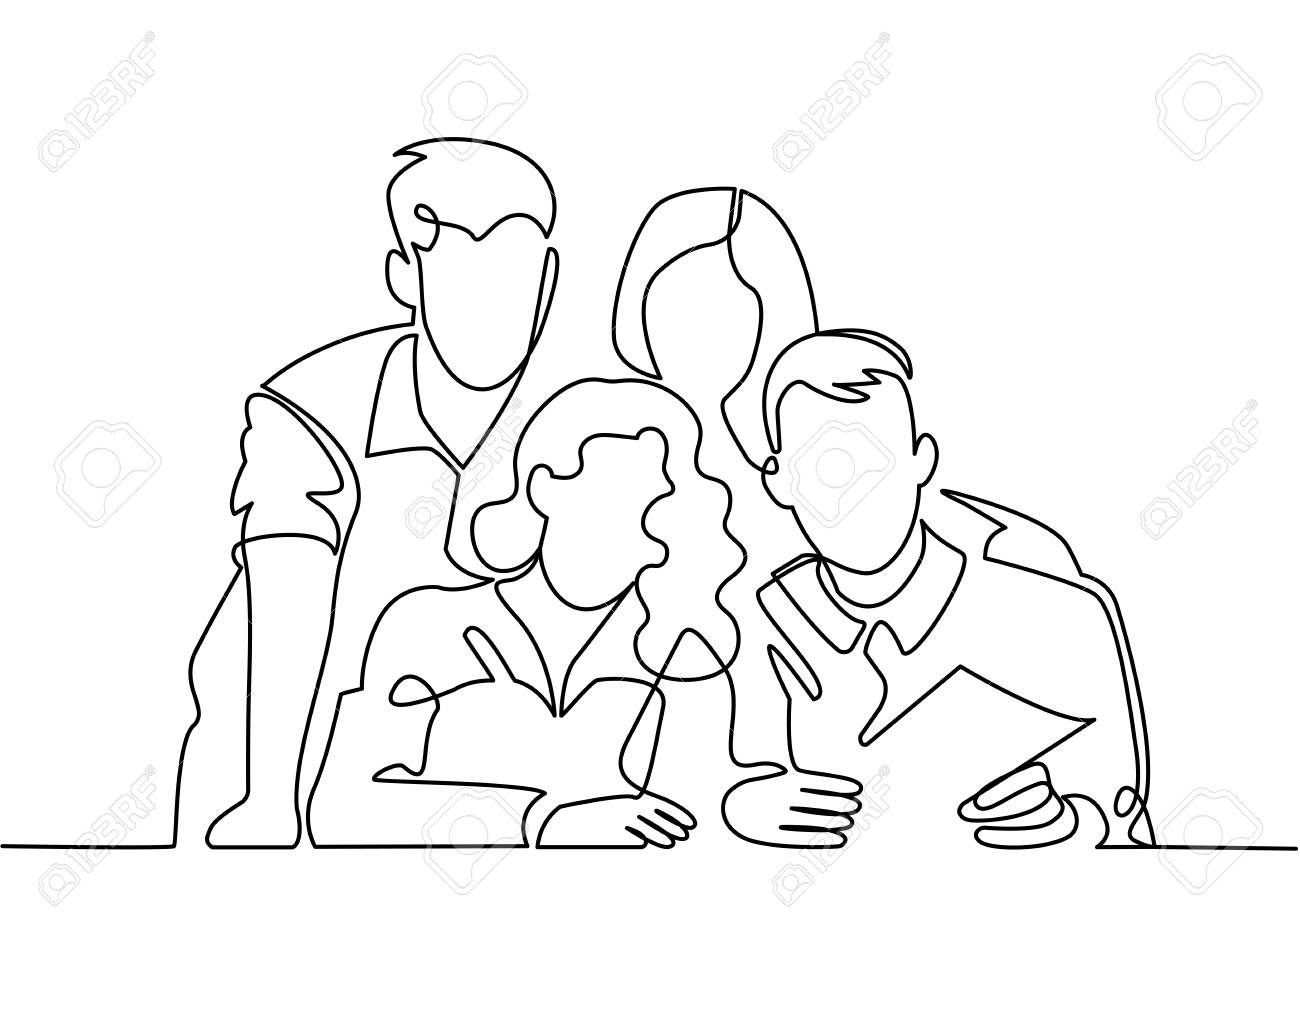 Continuous line drawing of business team or united family - 100084000